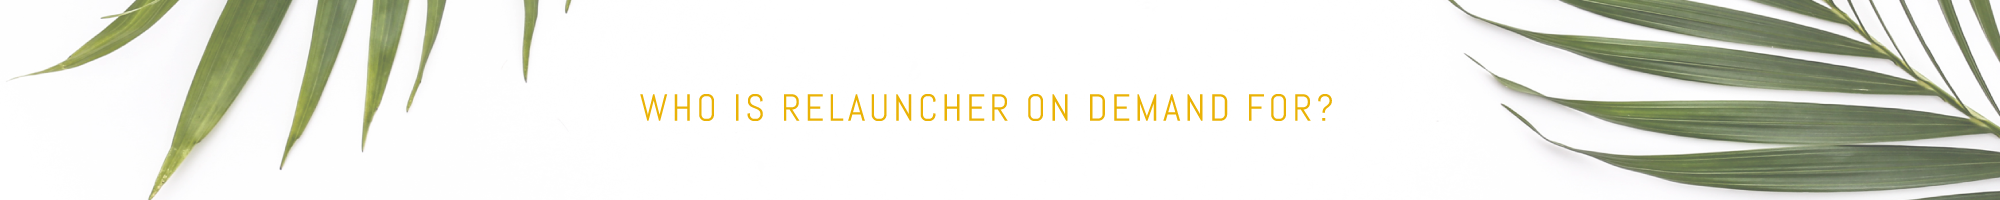 relauncher-on-demand.png